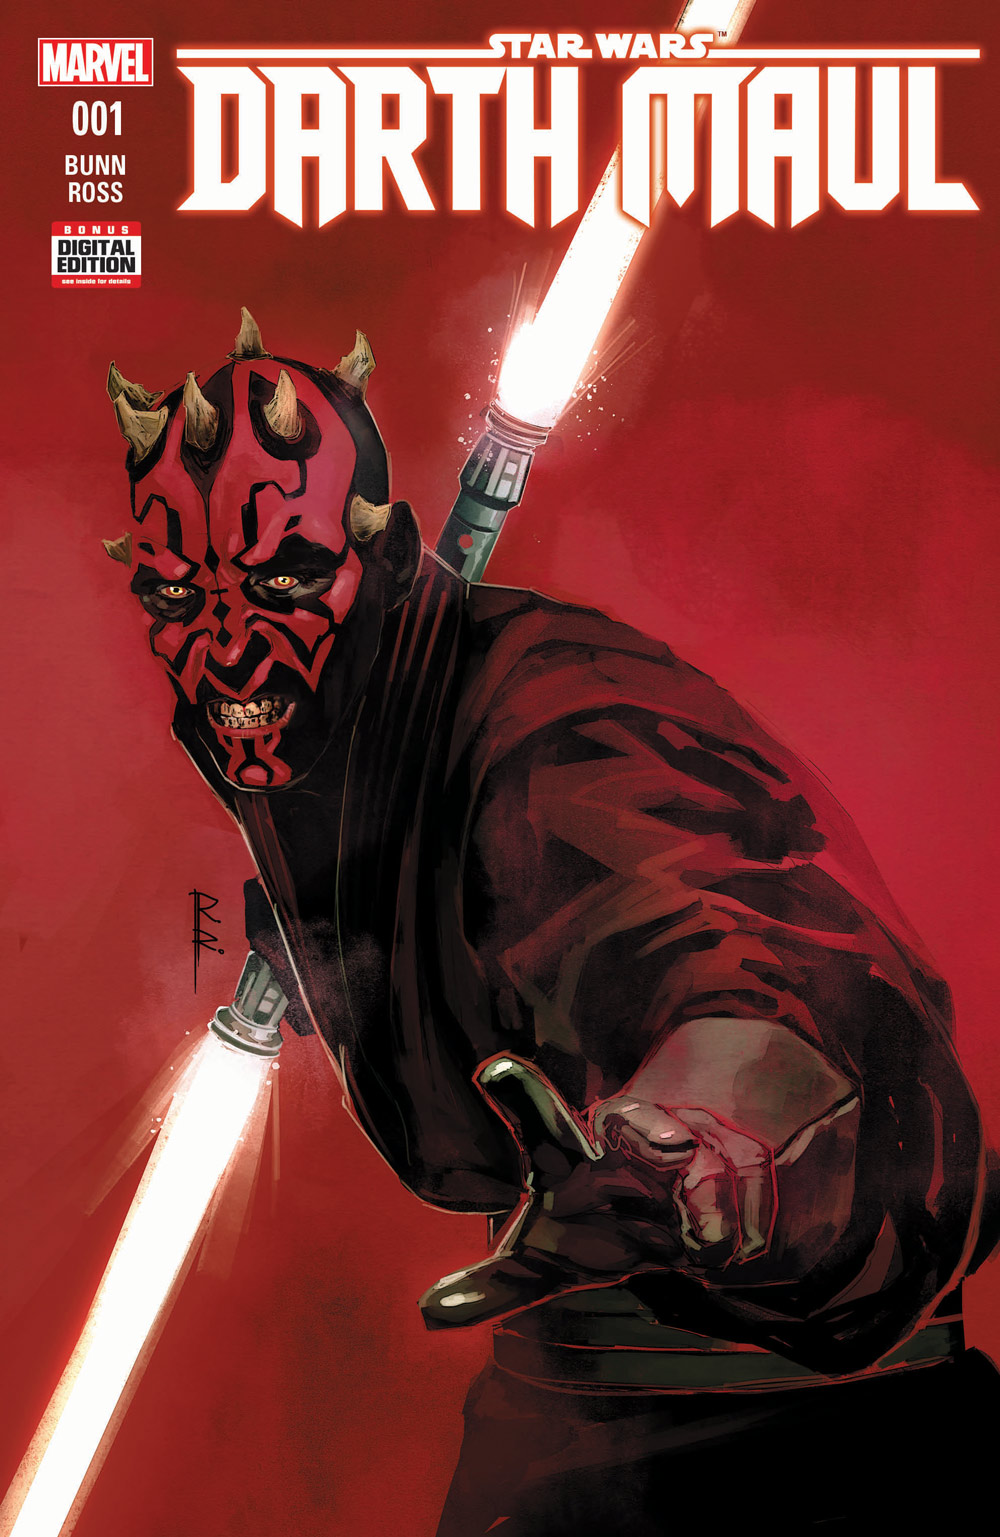 Darth-Maul-Star-Wars-Rod-Reis-cover